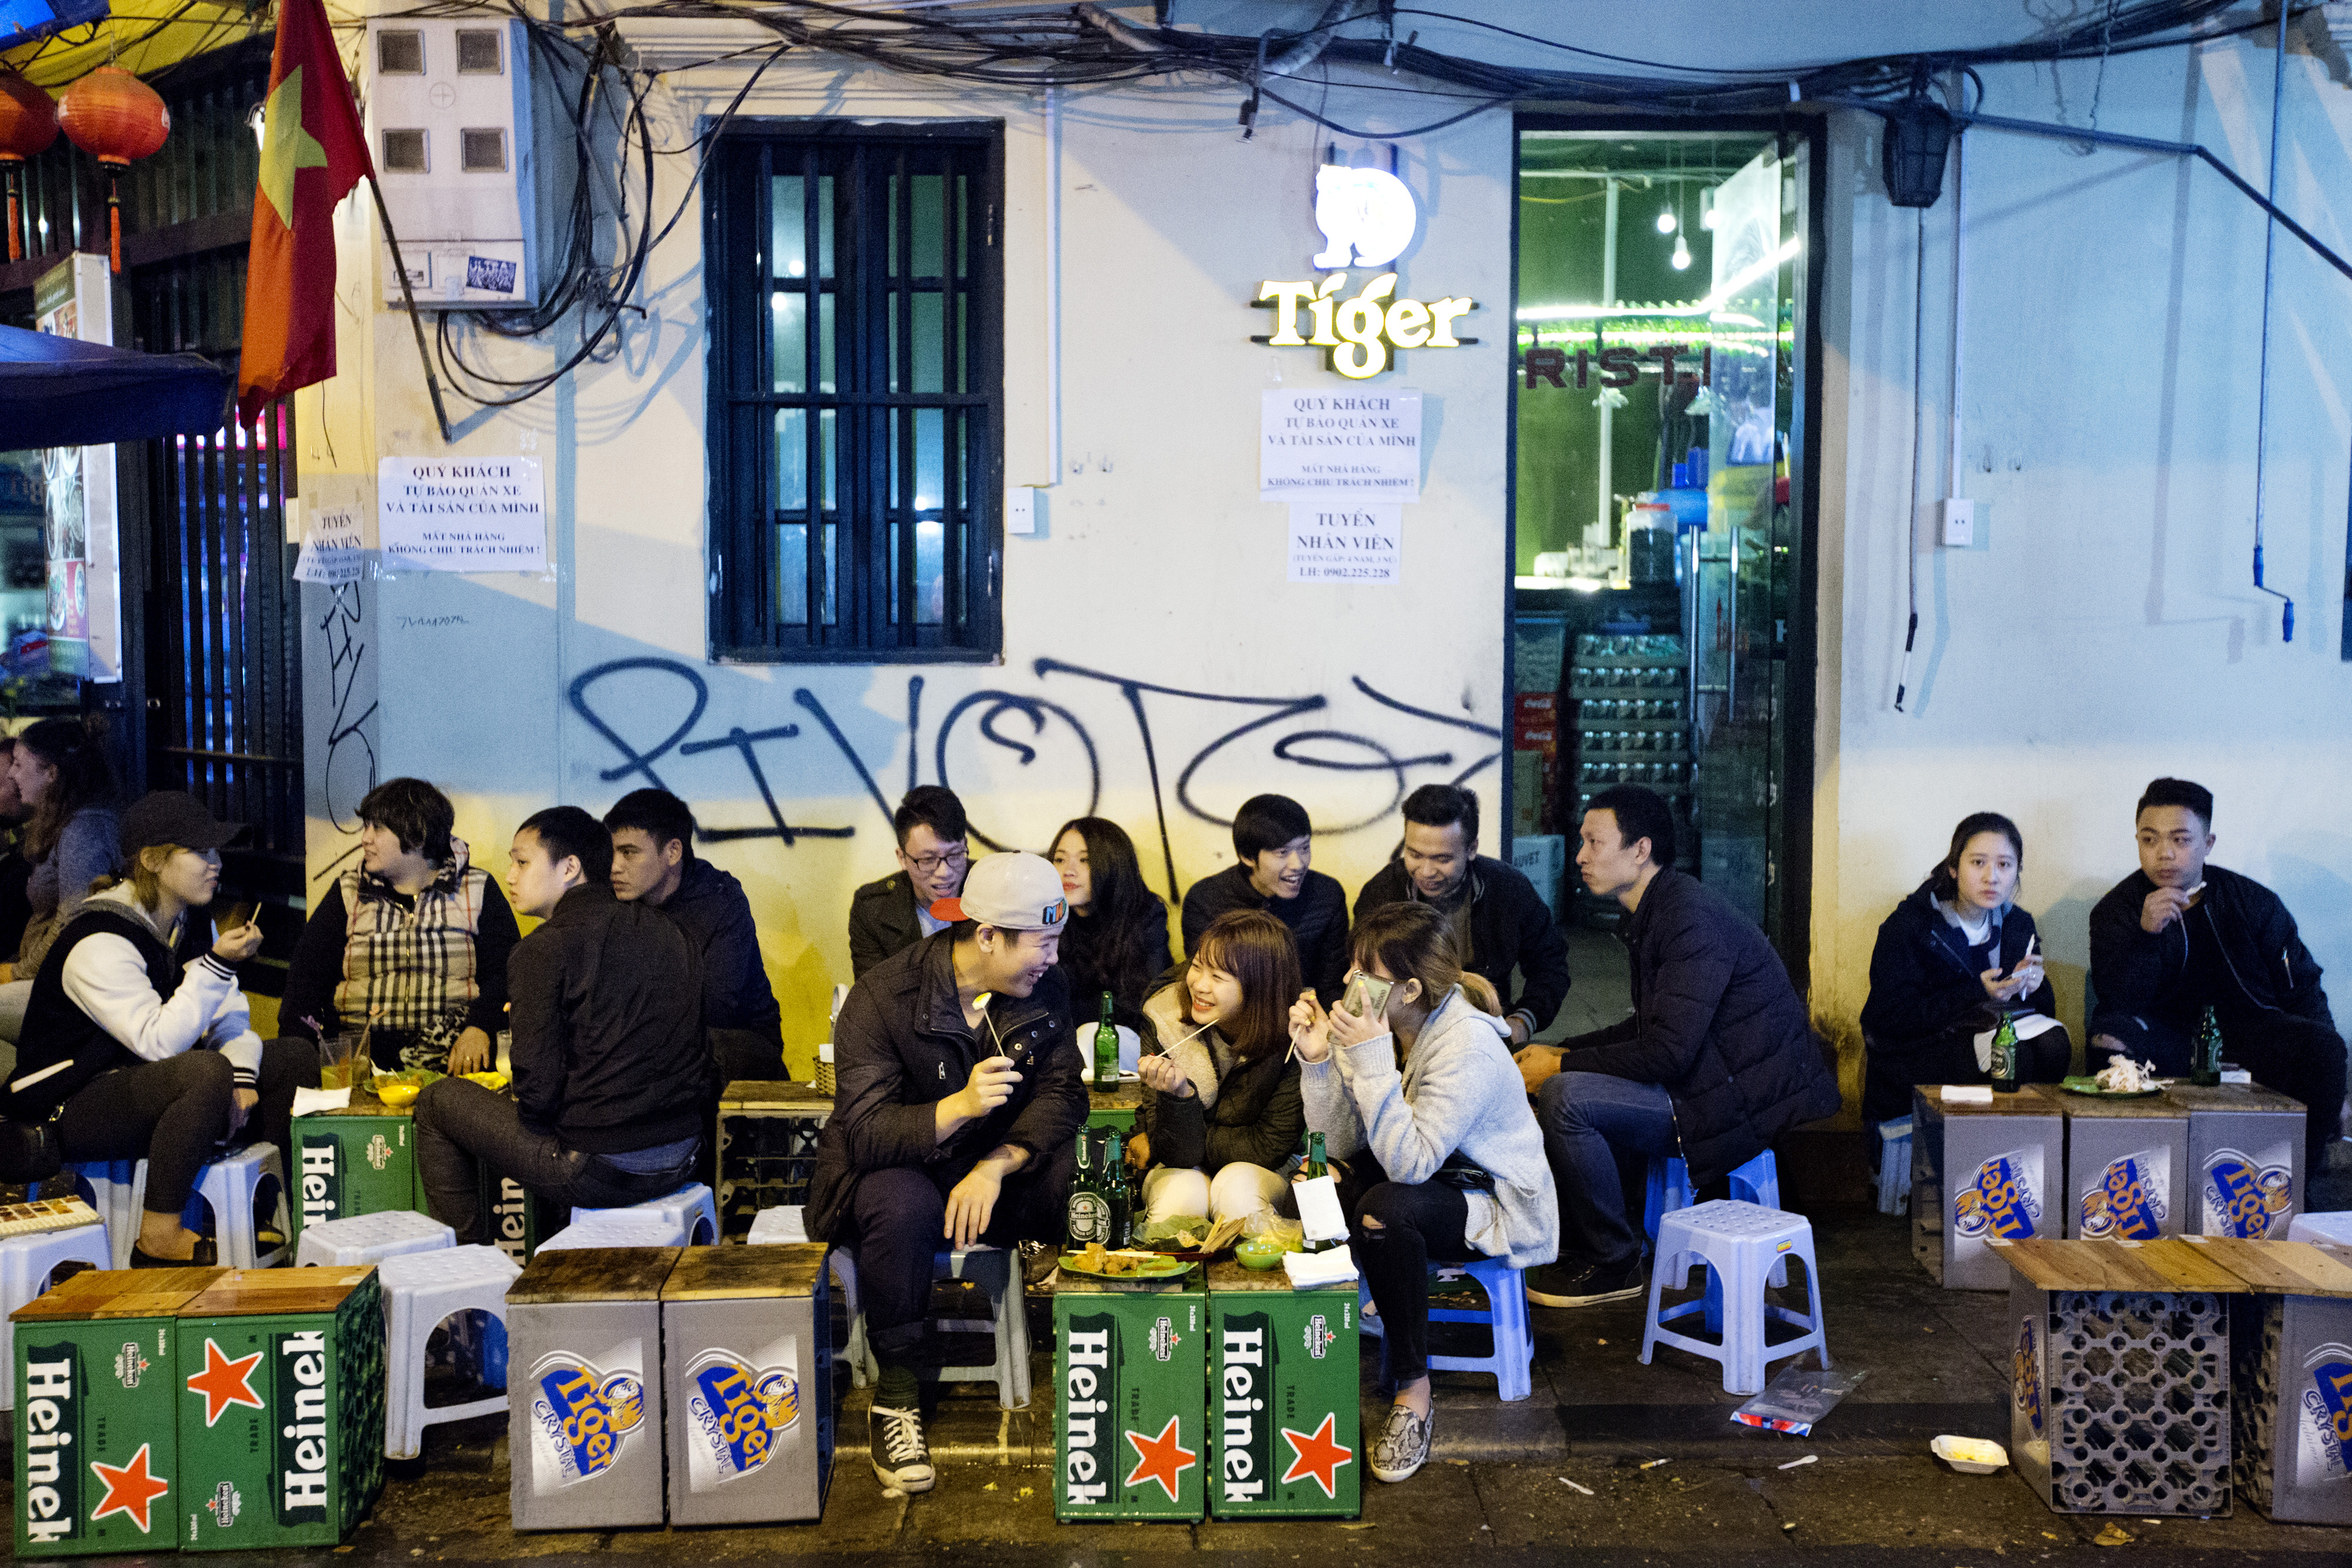 Customers sit eating and drinking over crates featuring branding for Heineken and Tiger beers at an outdoor restaurant in the Old Quarter of Hanoi, Vietnam, on Feb. 22, 2016. MUST CREDIT: Bloomberg photo by Maike Elan.